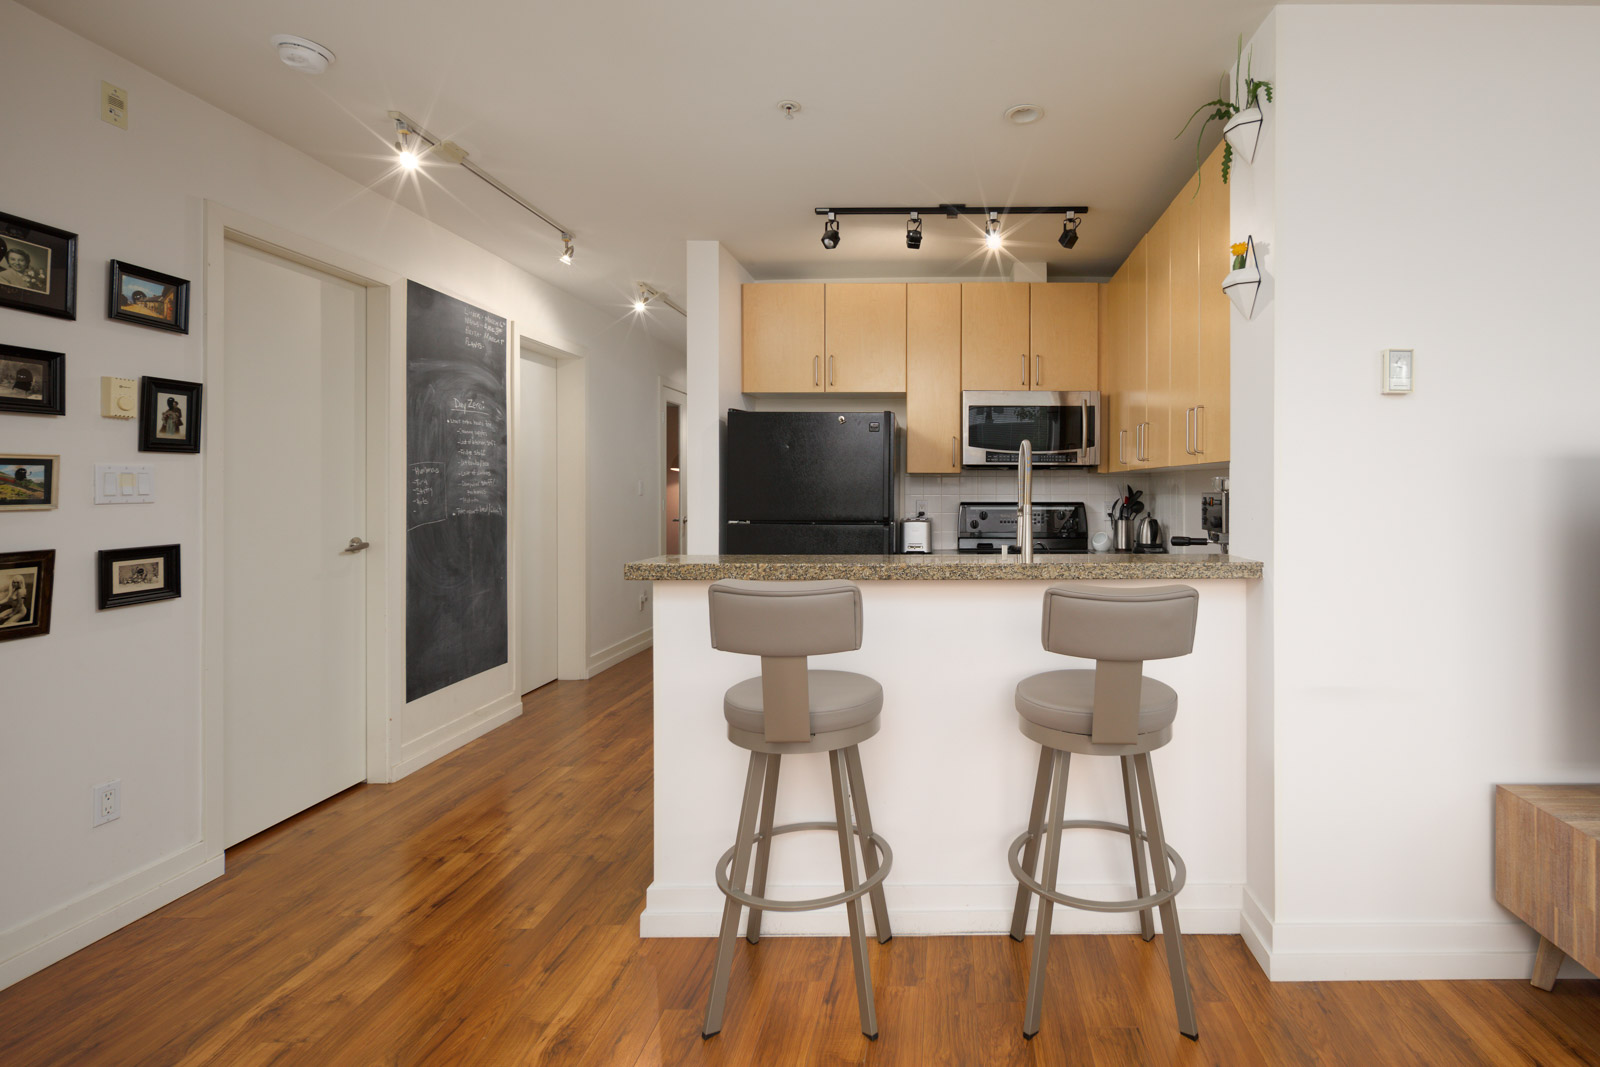 kitchen in rental condo at Arbutus Outlook in the West End neighbourhood of Vancouver